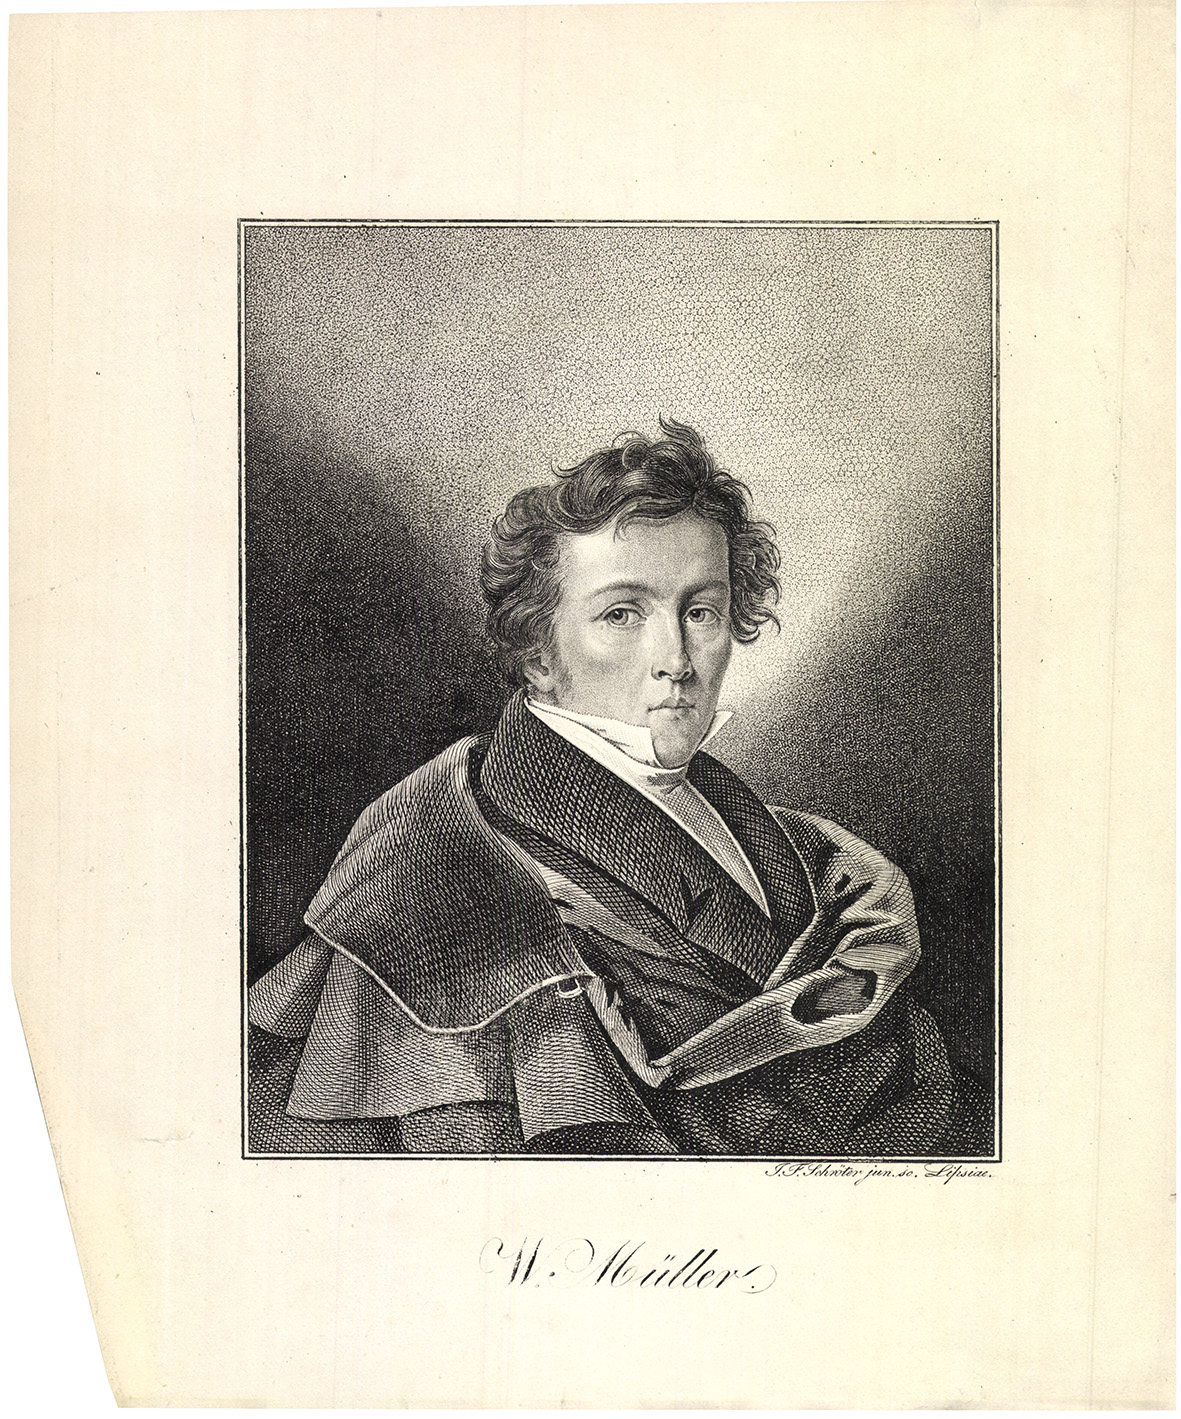 W. Müller